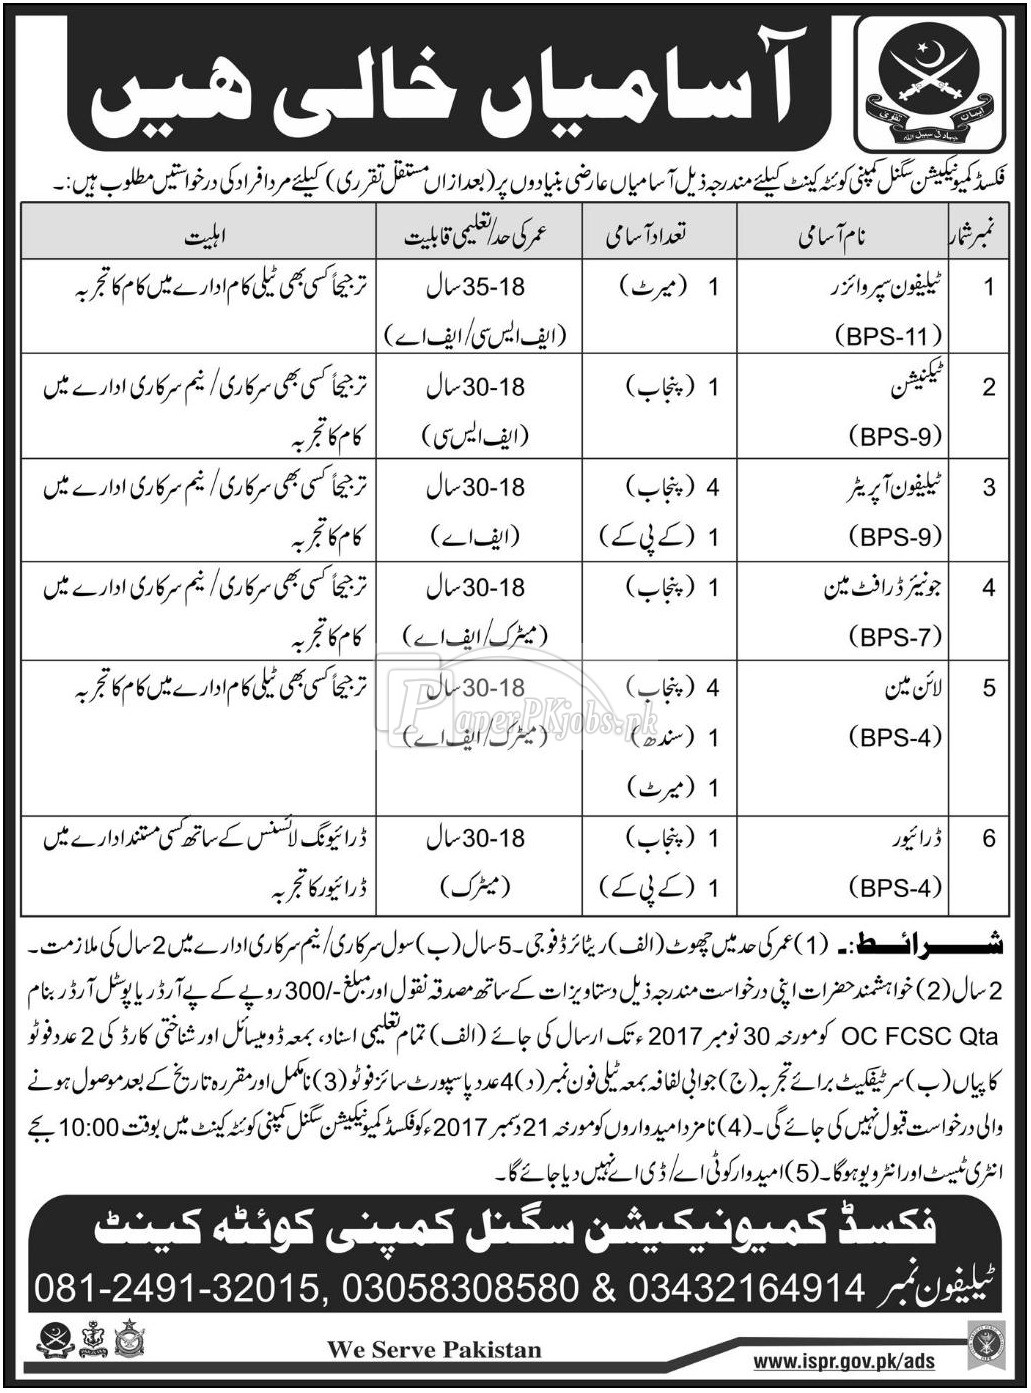 Fixed Communication Signal Company Quetta Cantt Jobs 2017